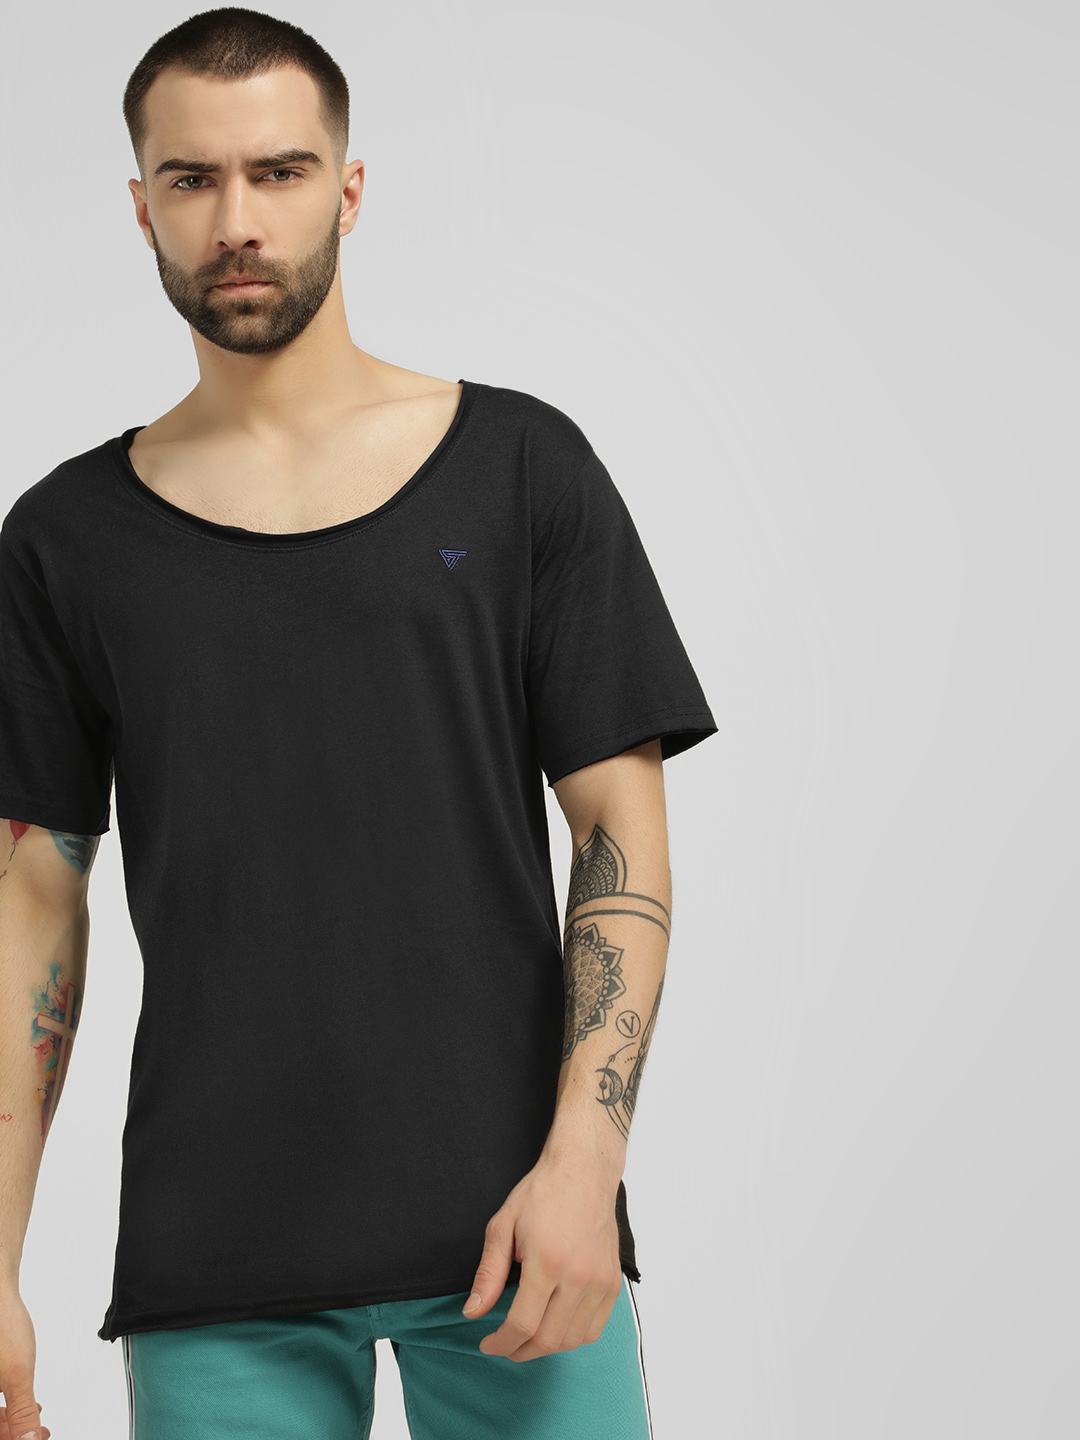 Blue Saint Black Raw Edge Scoop Neck T-Shirt 1